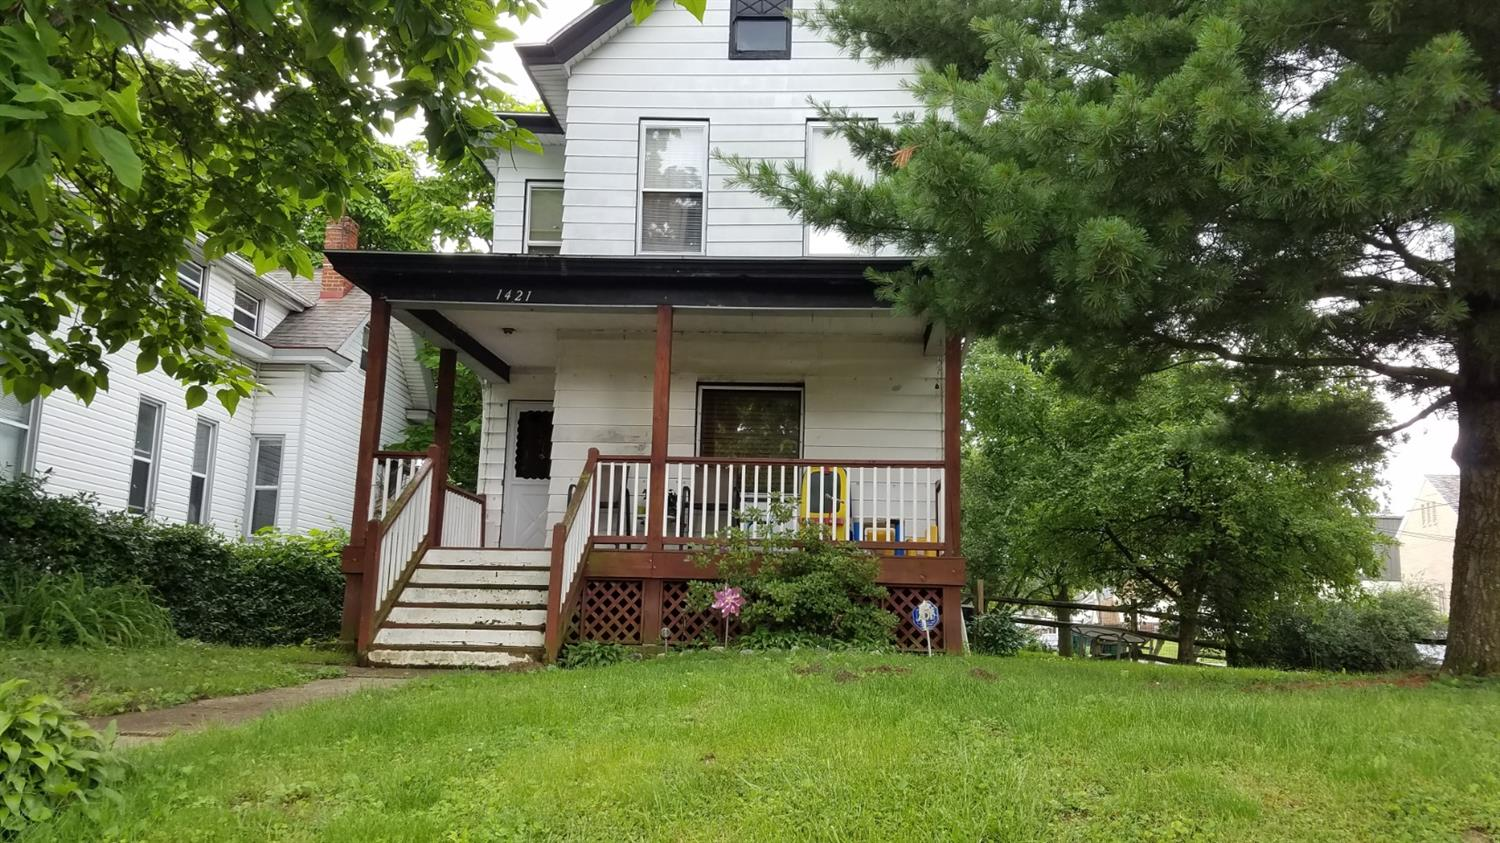 Property for sale at 1421 Cedar Avenue, Cincinnati,  Ohio 45224